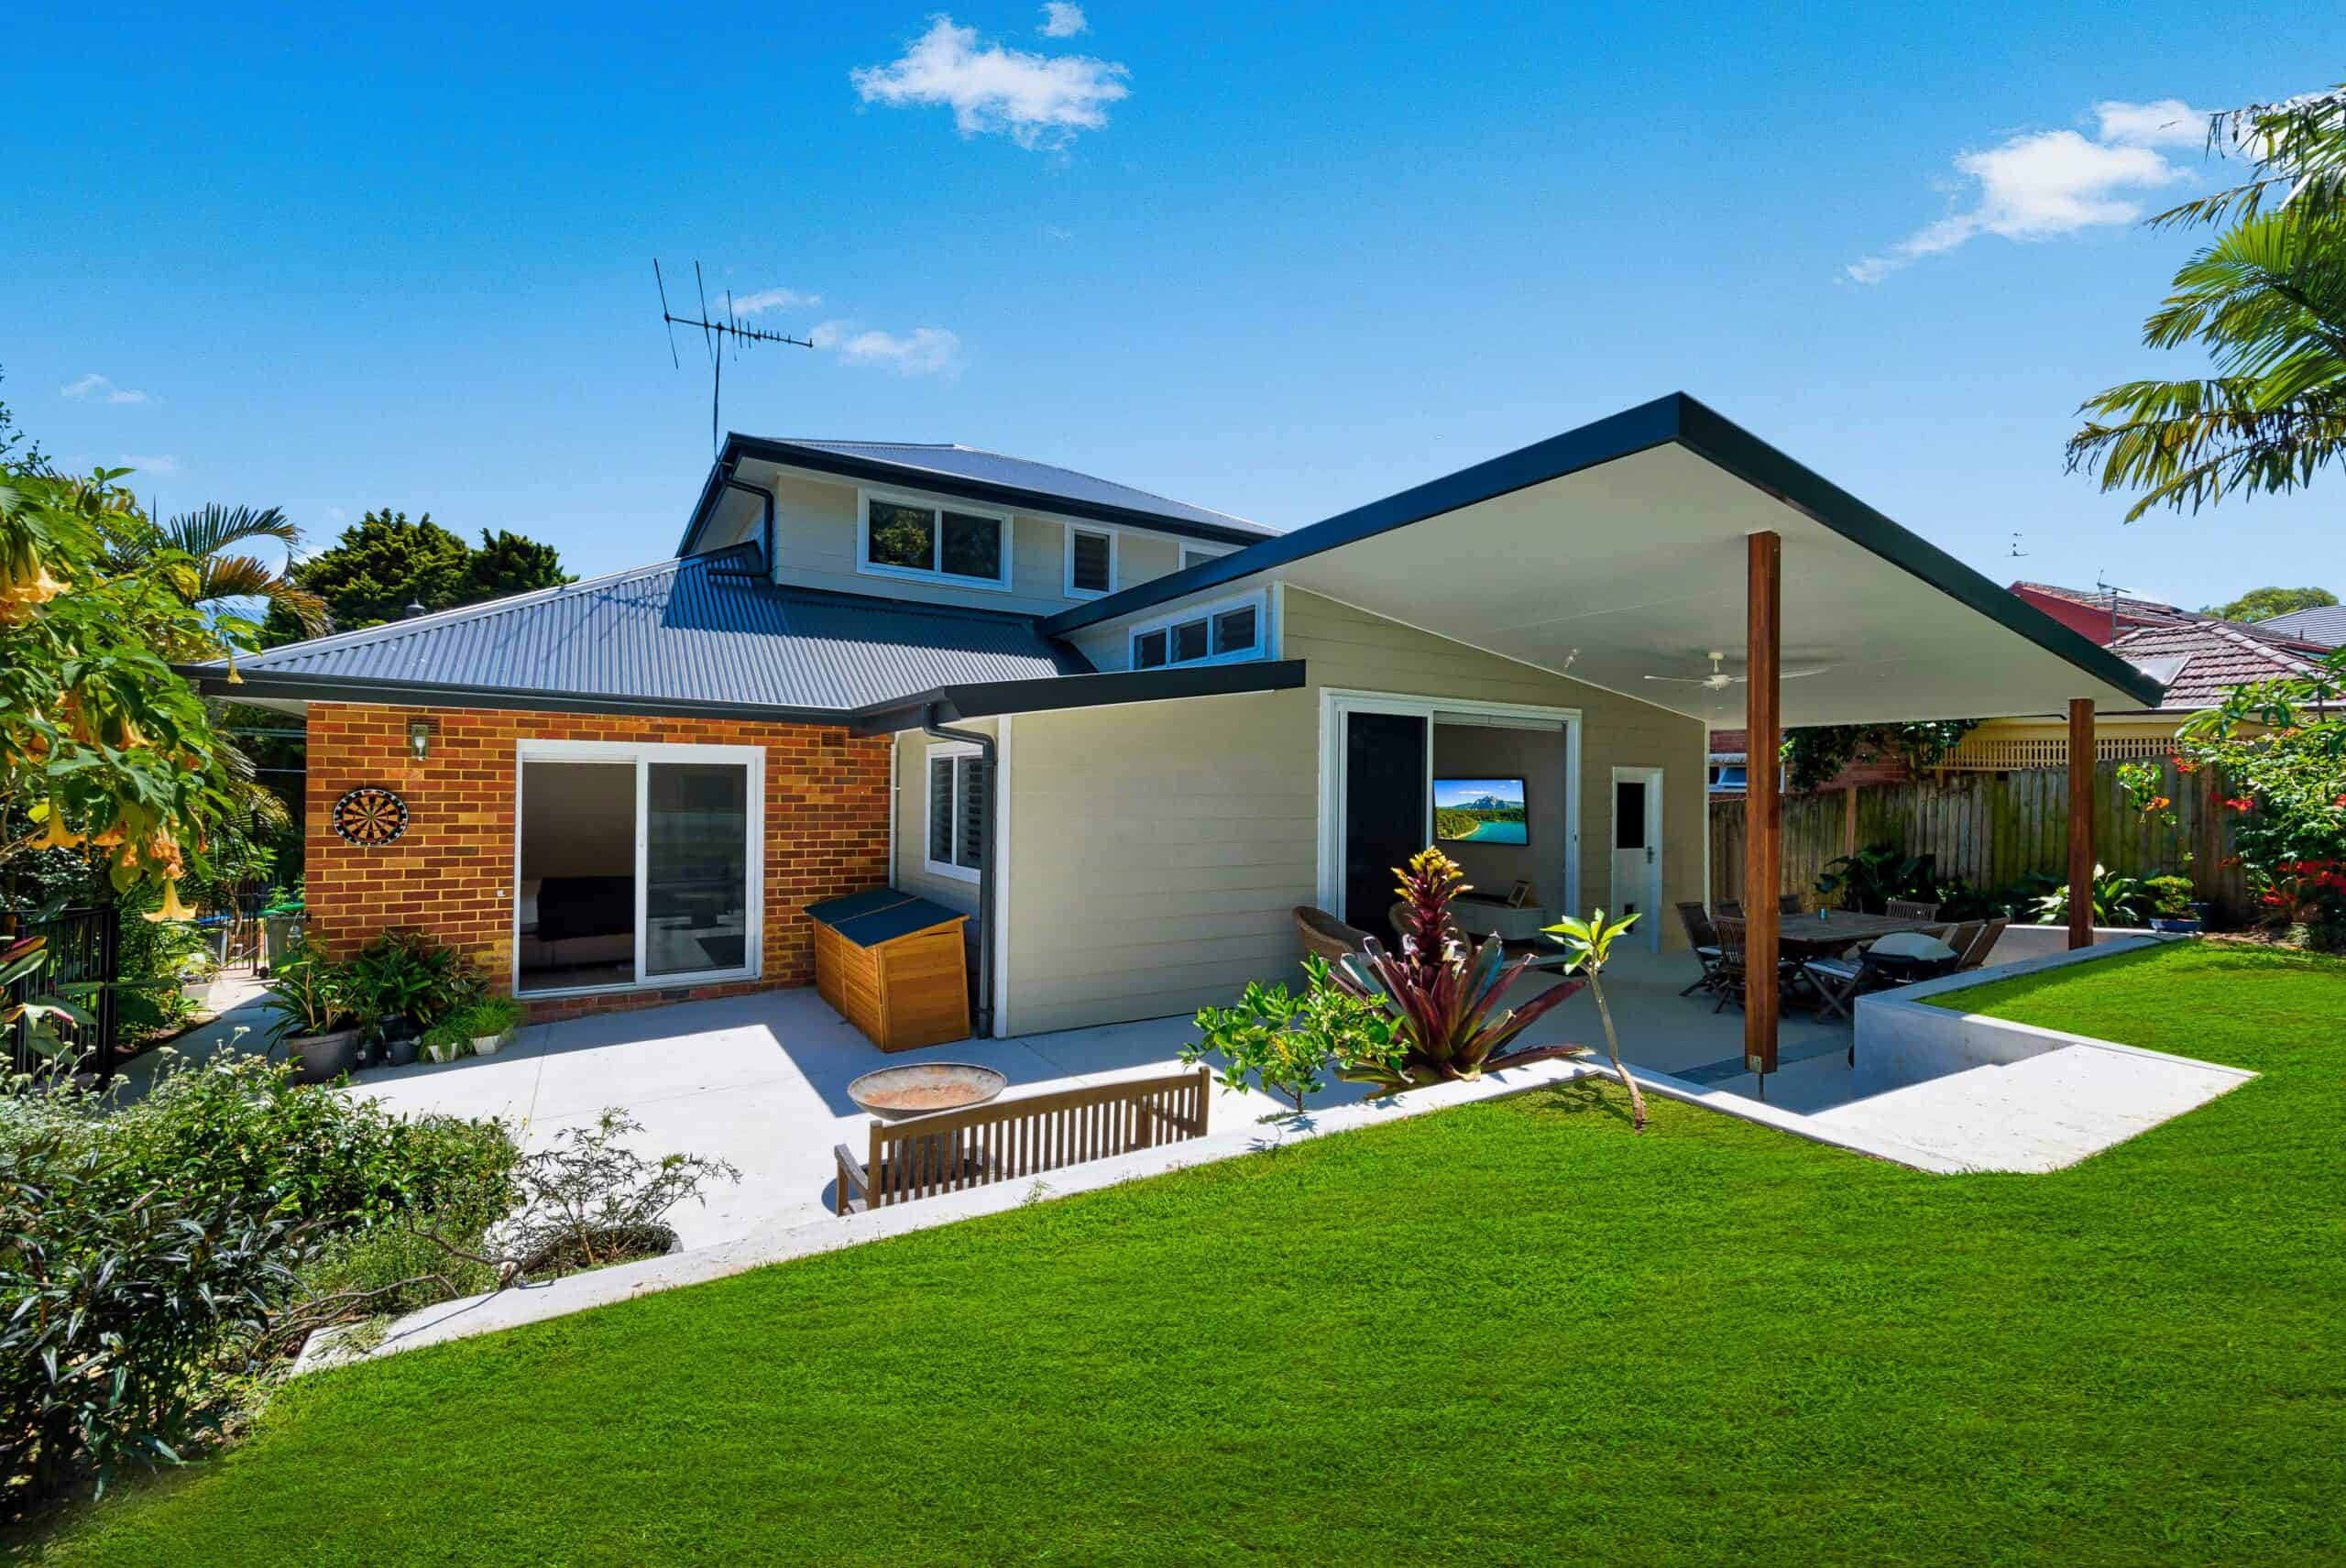 What Are The Steps To Follow To Hire A Builder In Pennant Hills